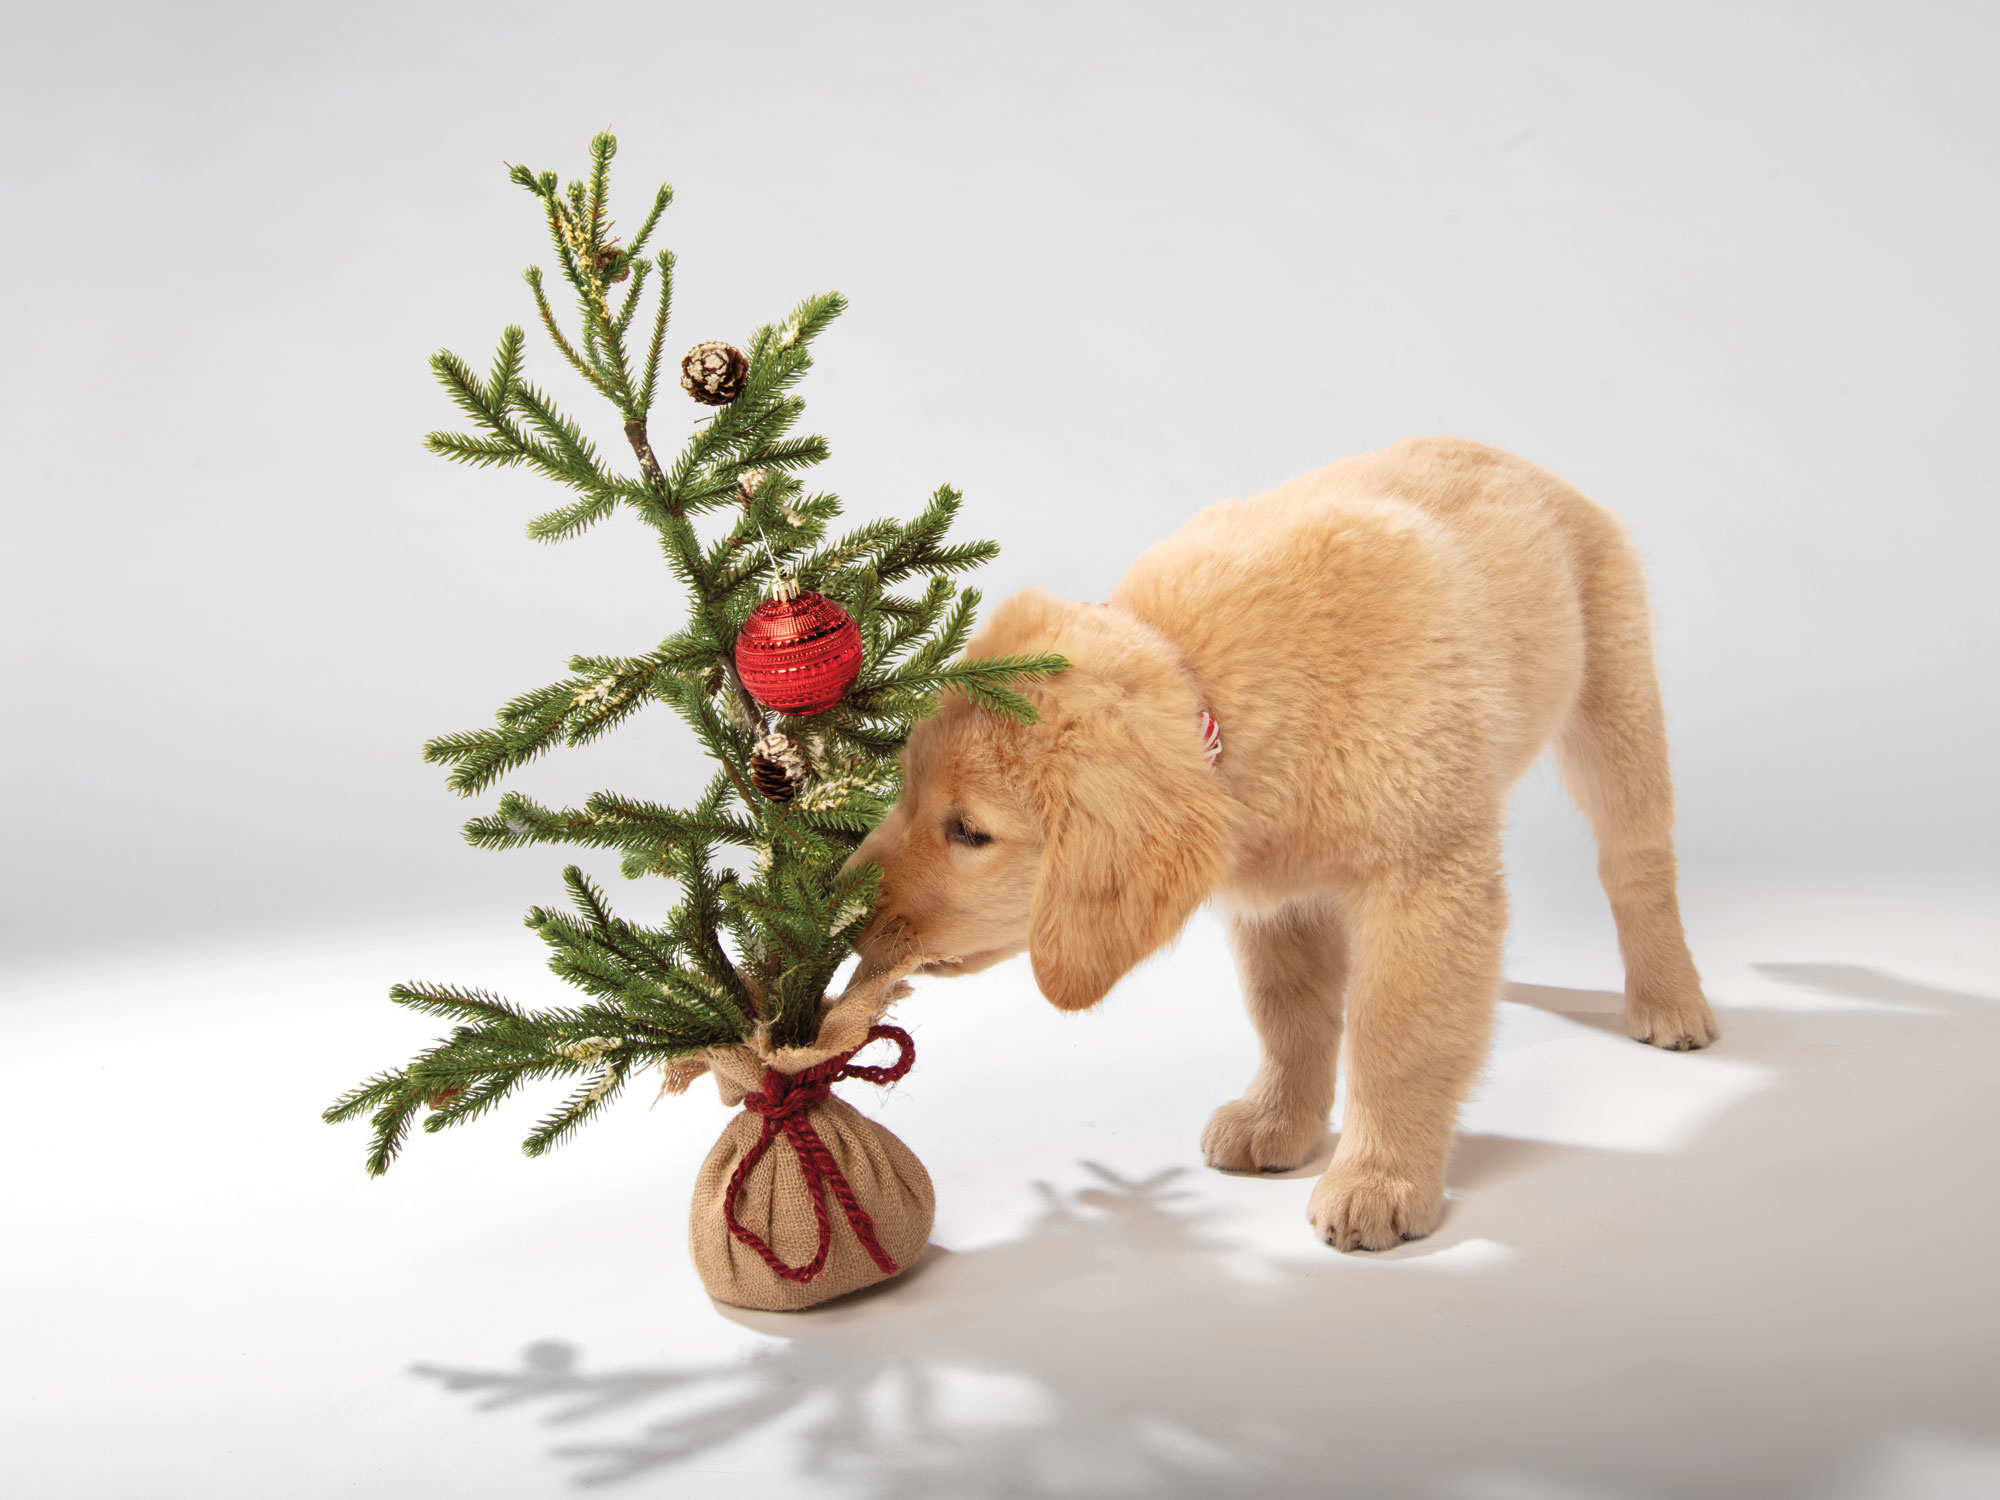 Pet safety tips for around your holiday plants